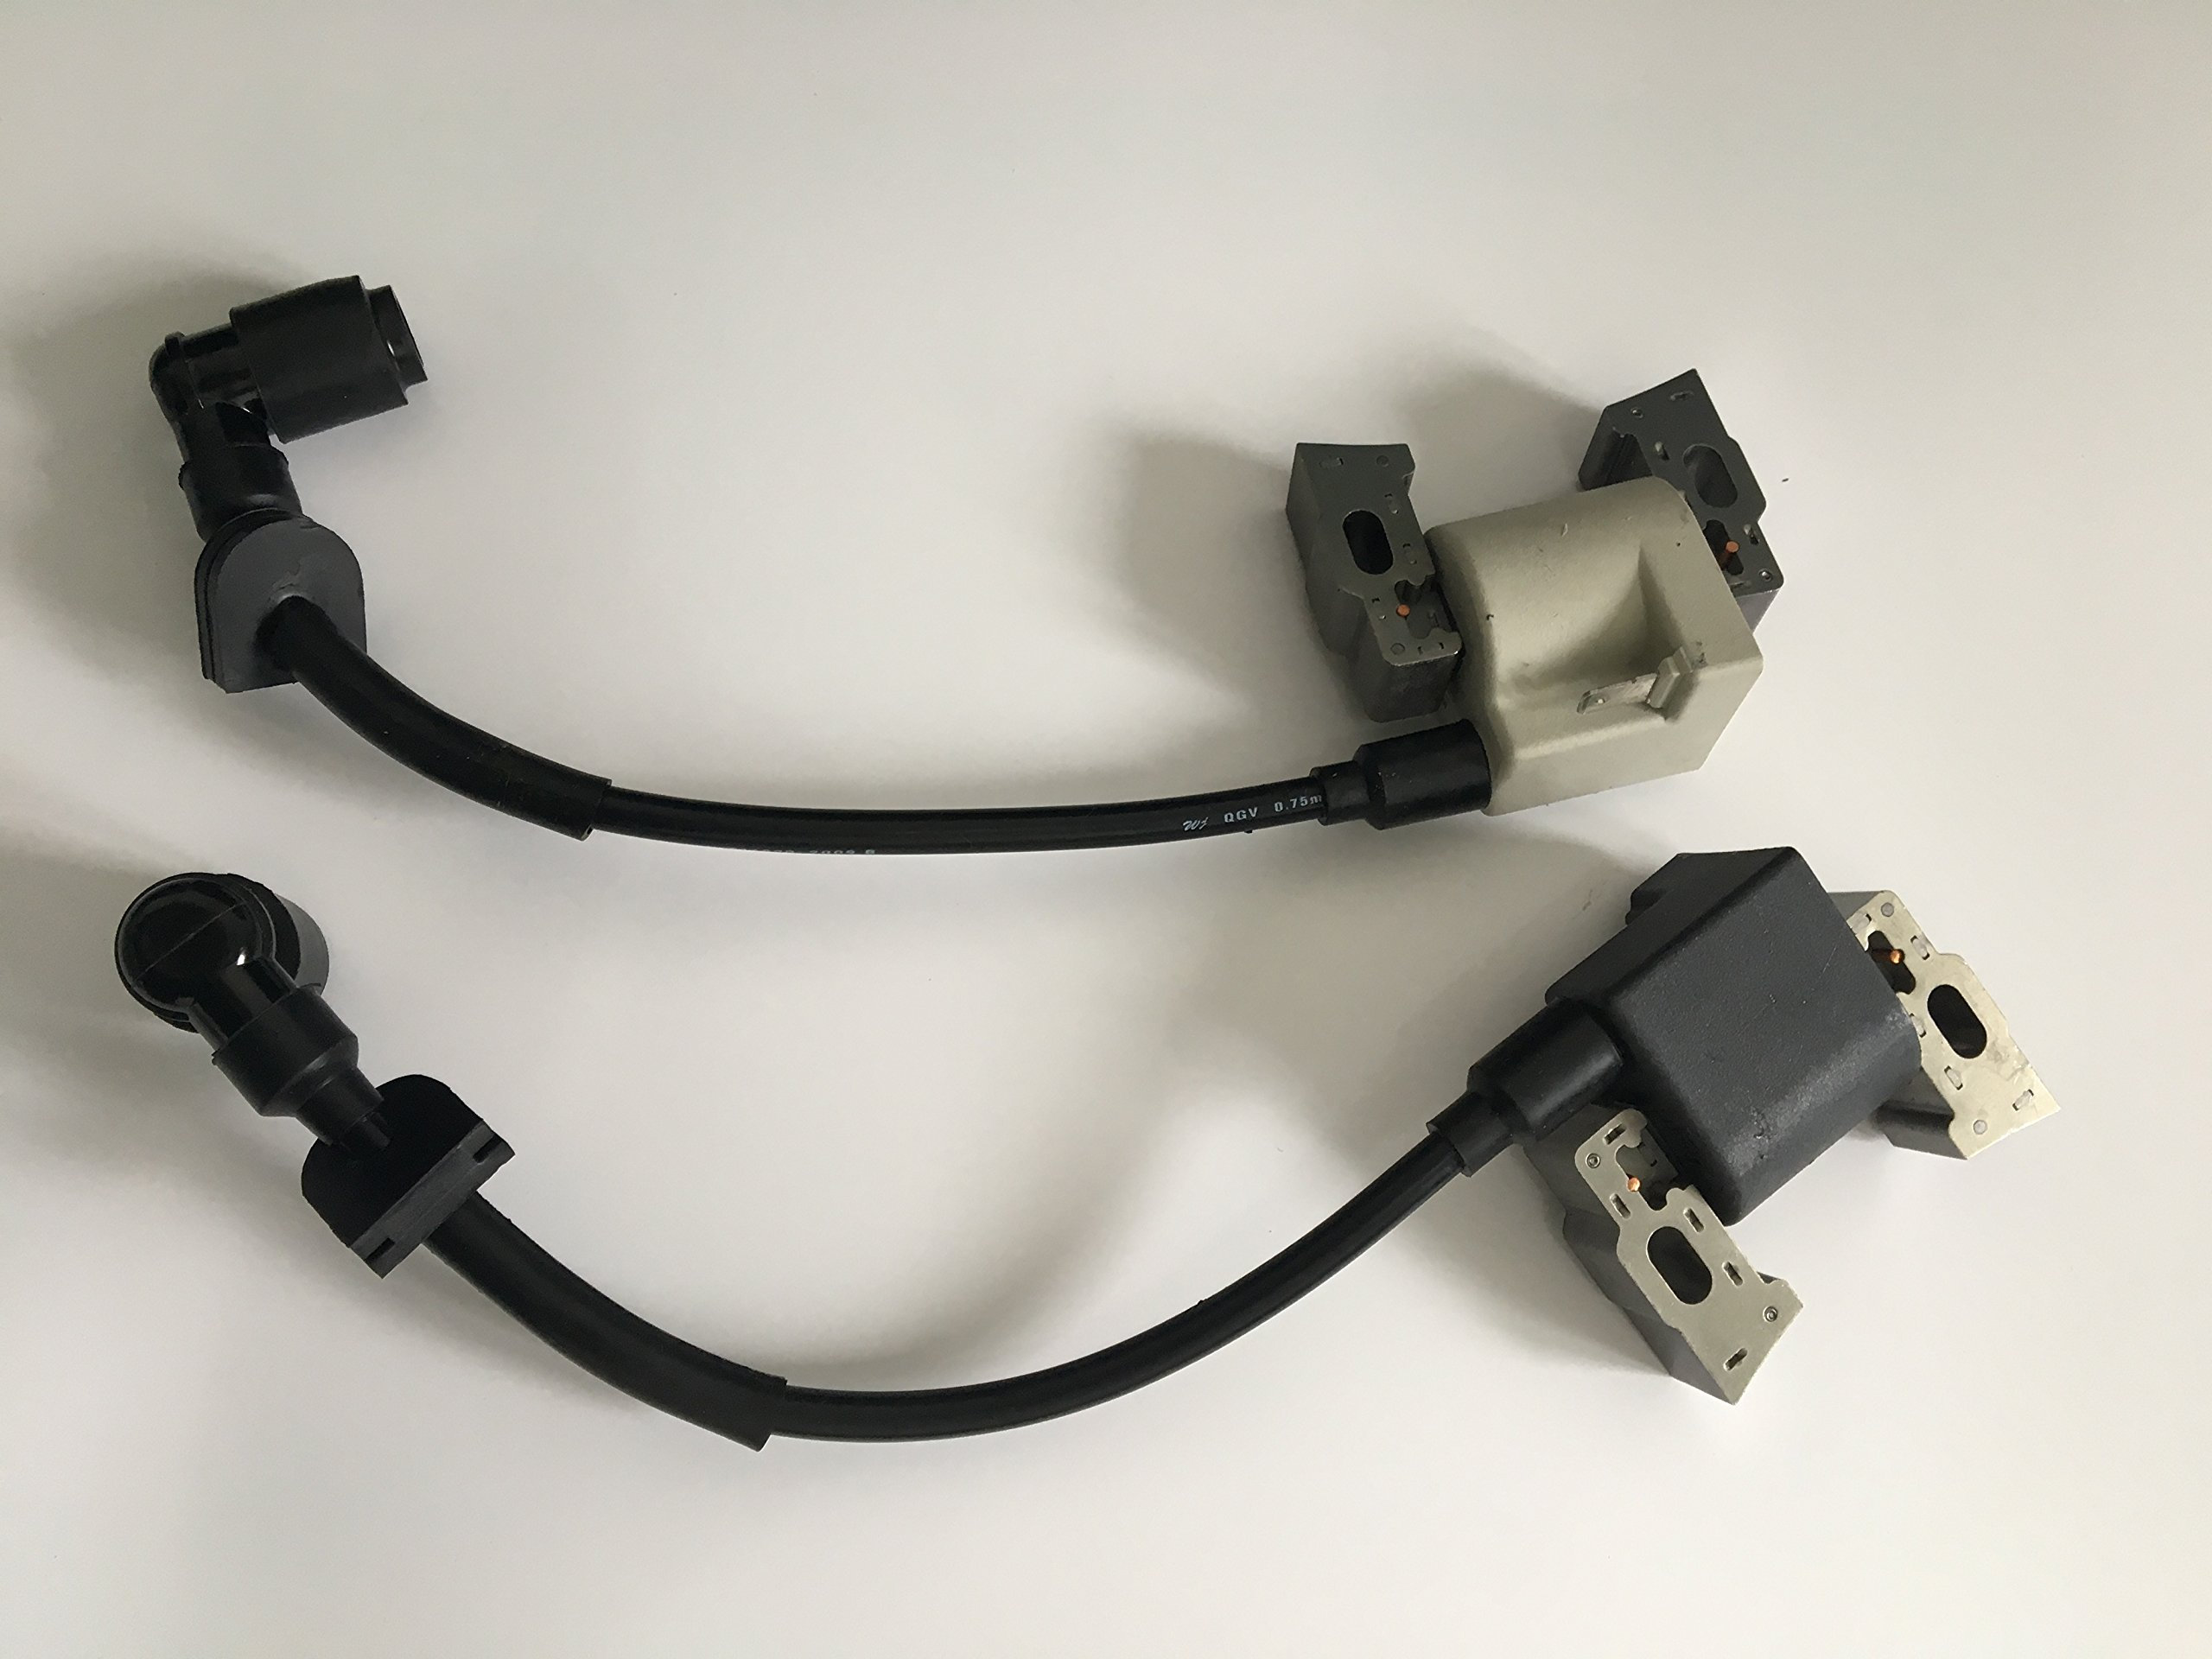 Set of 2 Ignition Coils Left and Right FITS Honda GX620 20HP V Twin Engines